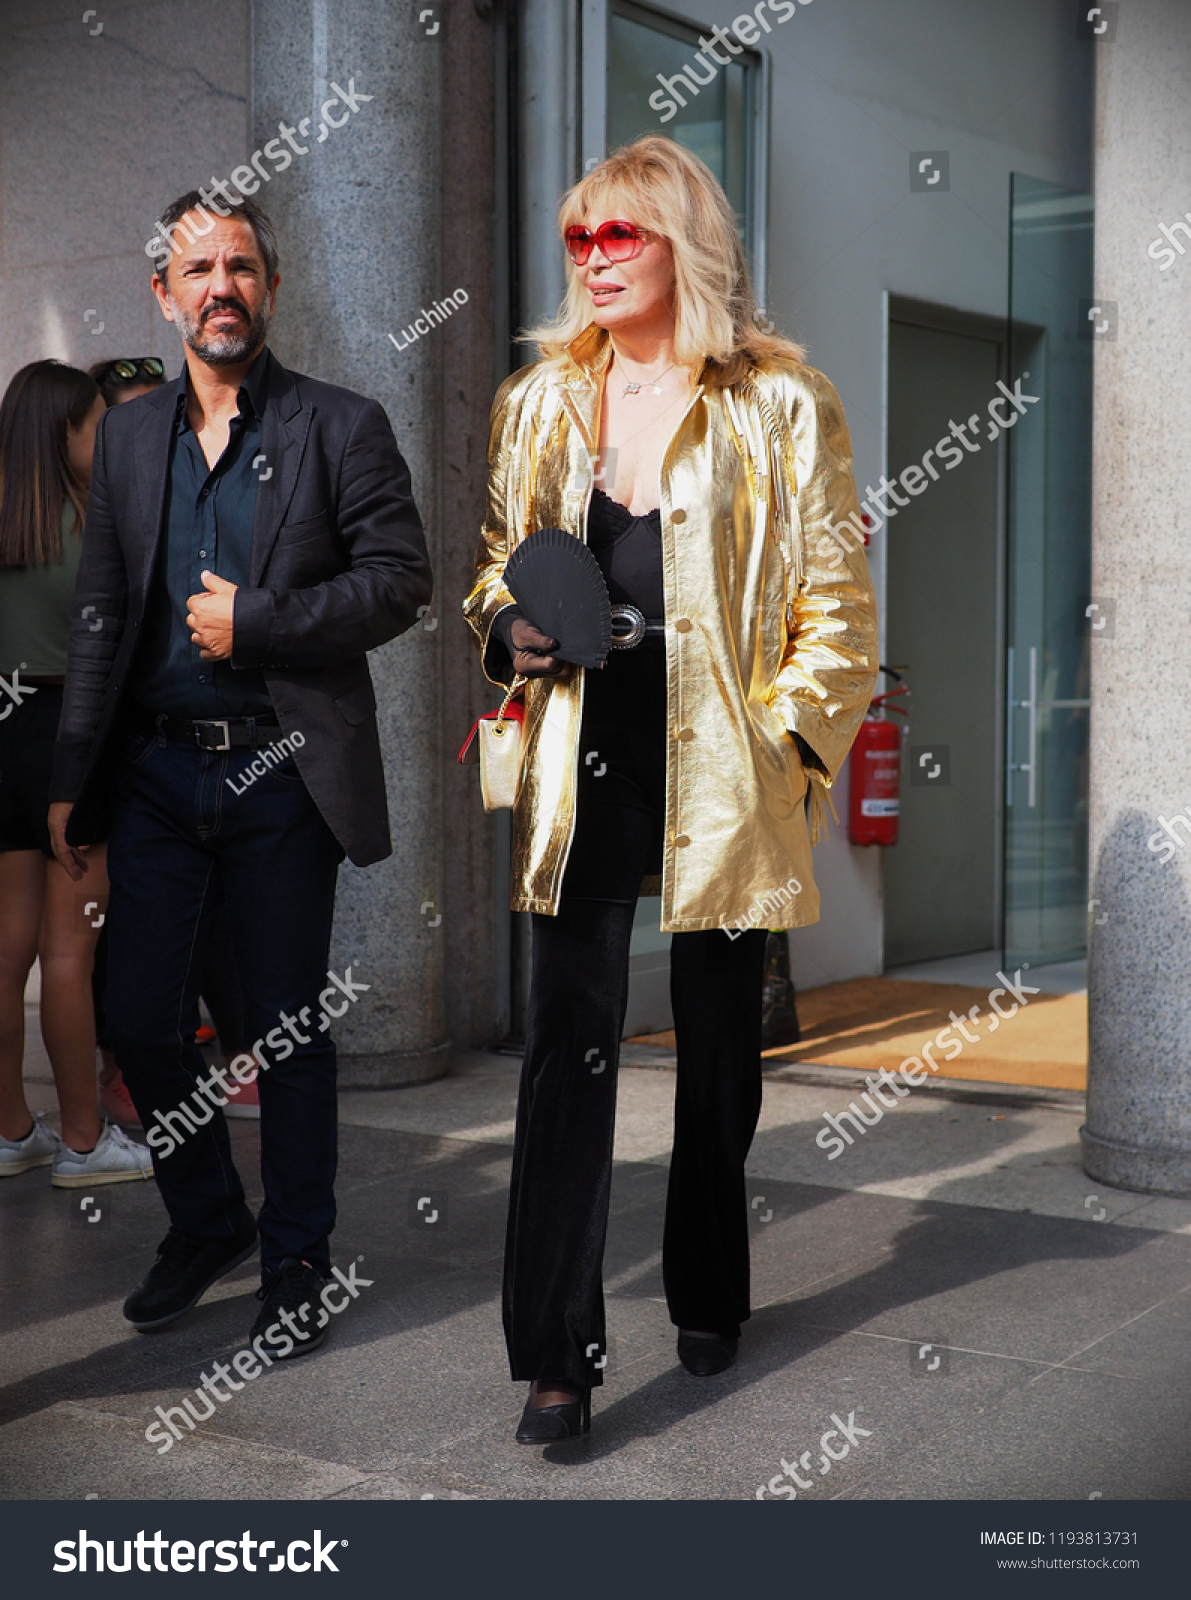 Amanda Lear See Through. 2018-2019 celebrityes photos leaks! nude (32 photo), Topless Celebrity images